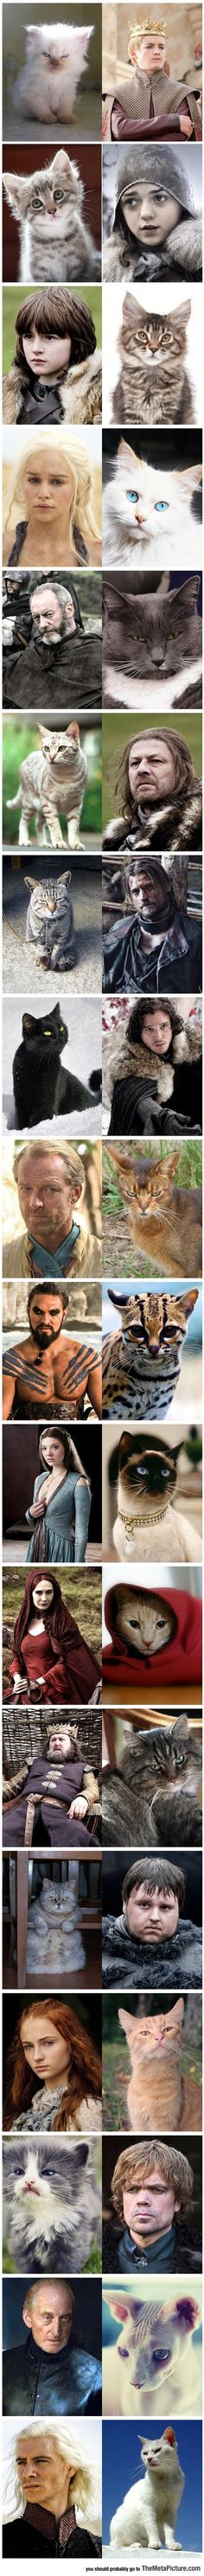 If The Cast Of Game Of Thrones Was Completely Replaced With Cats